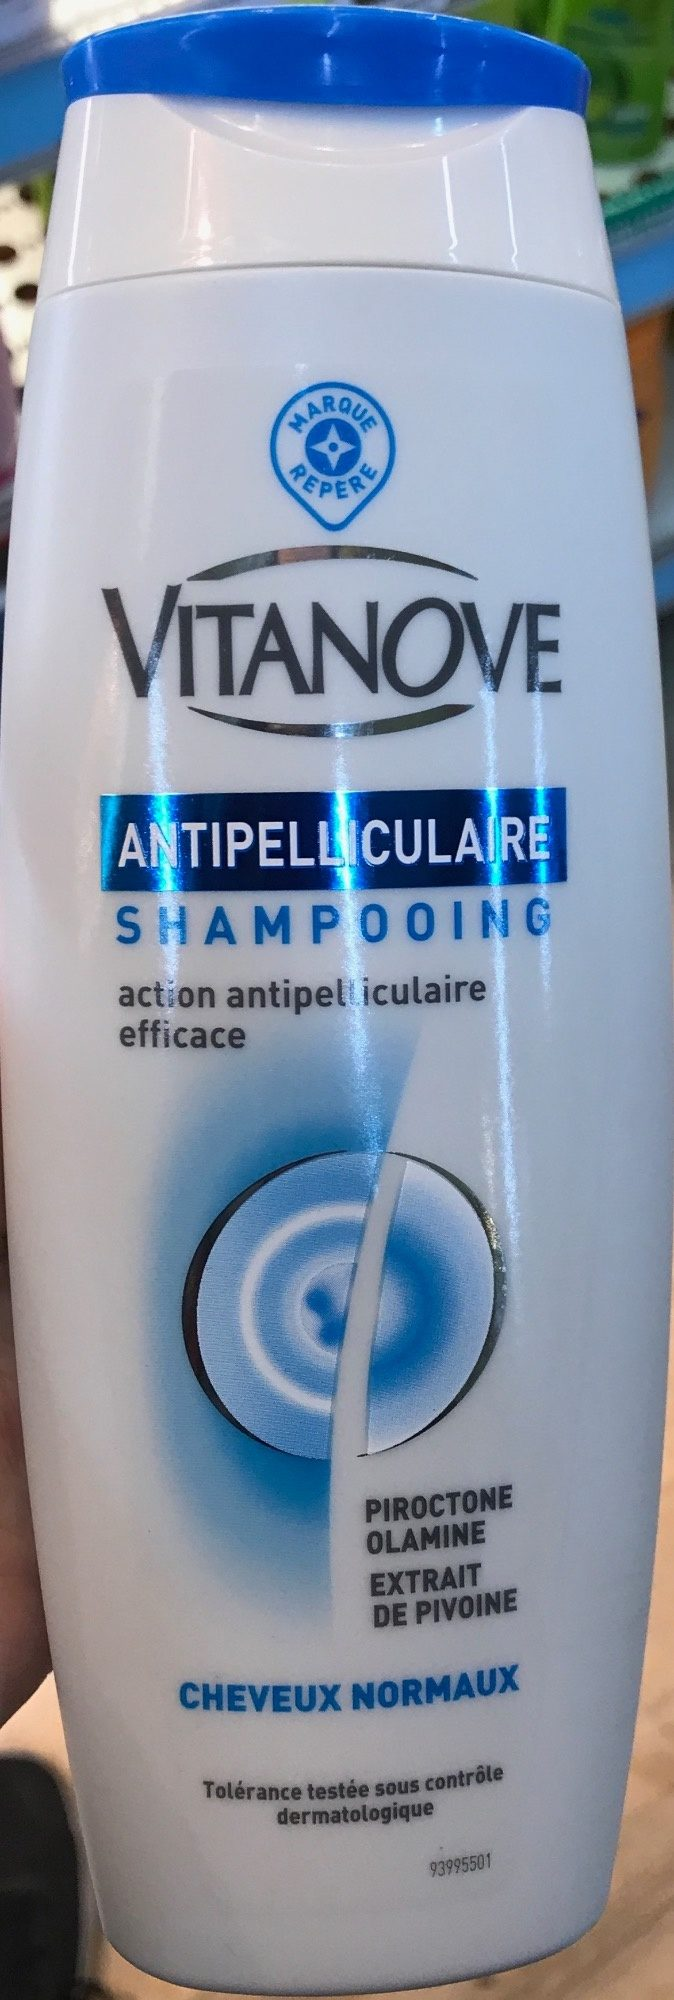 Antipelliculaire Shampooing - Product - fr